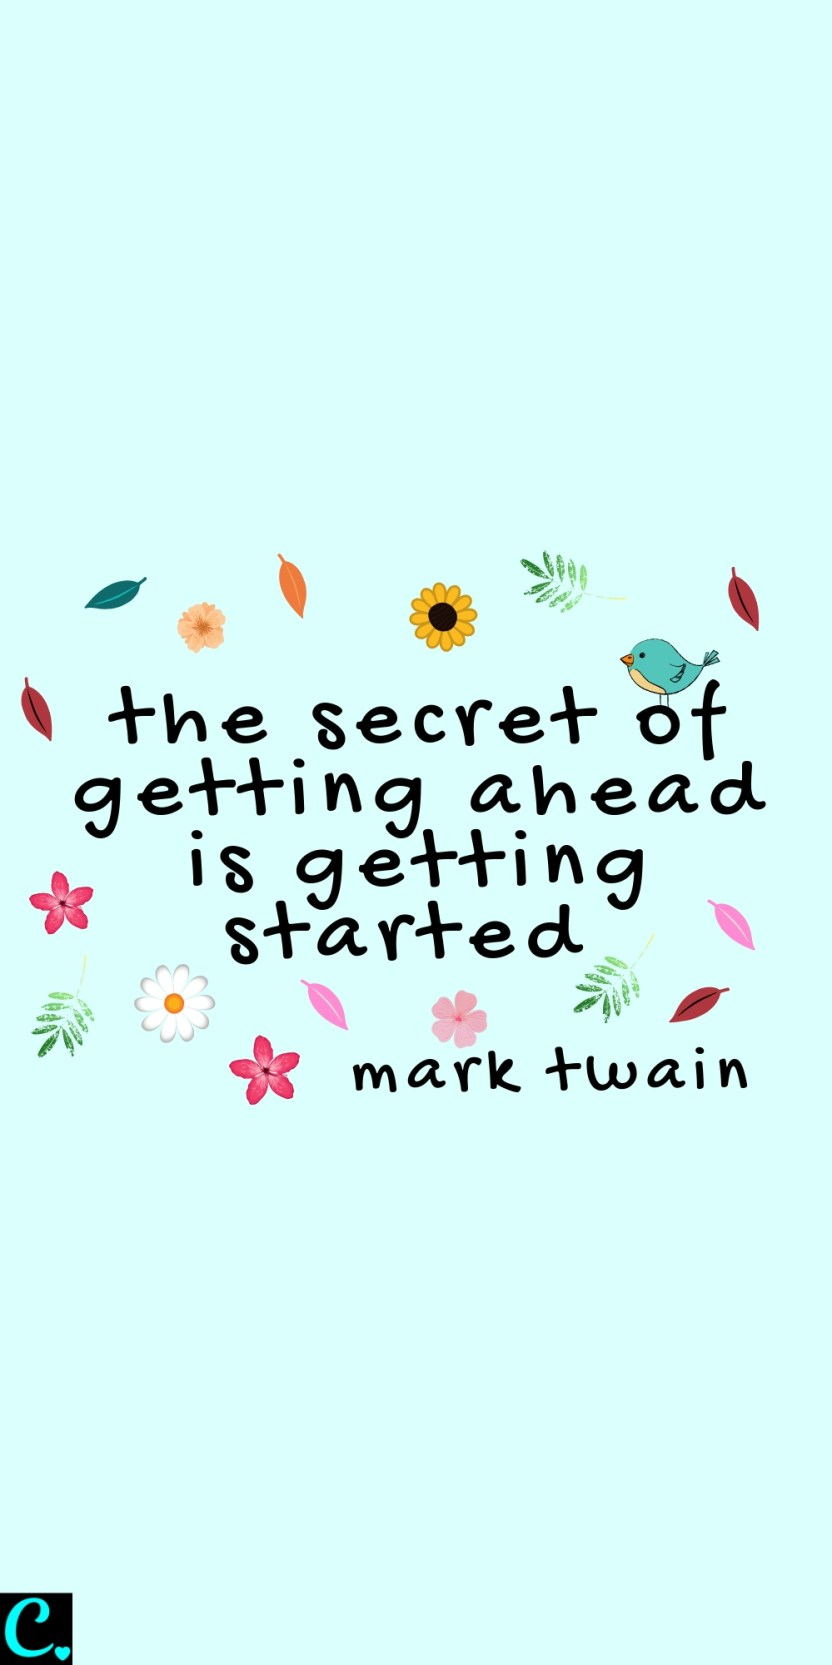 the secret of getting started is getting ahead - Mark Twain quote #successquote #comfortzonequotes #successmindset #achievegoals #successfulwomen